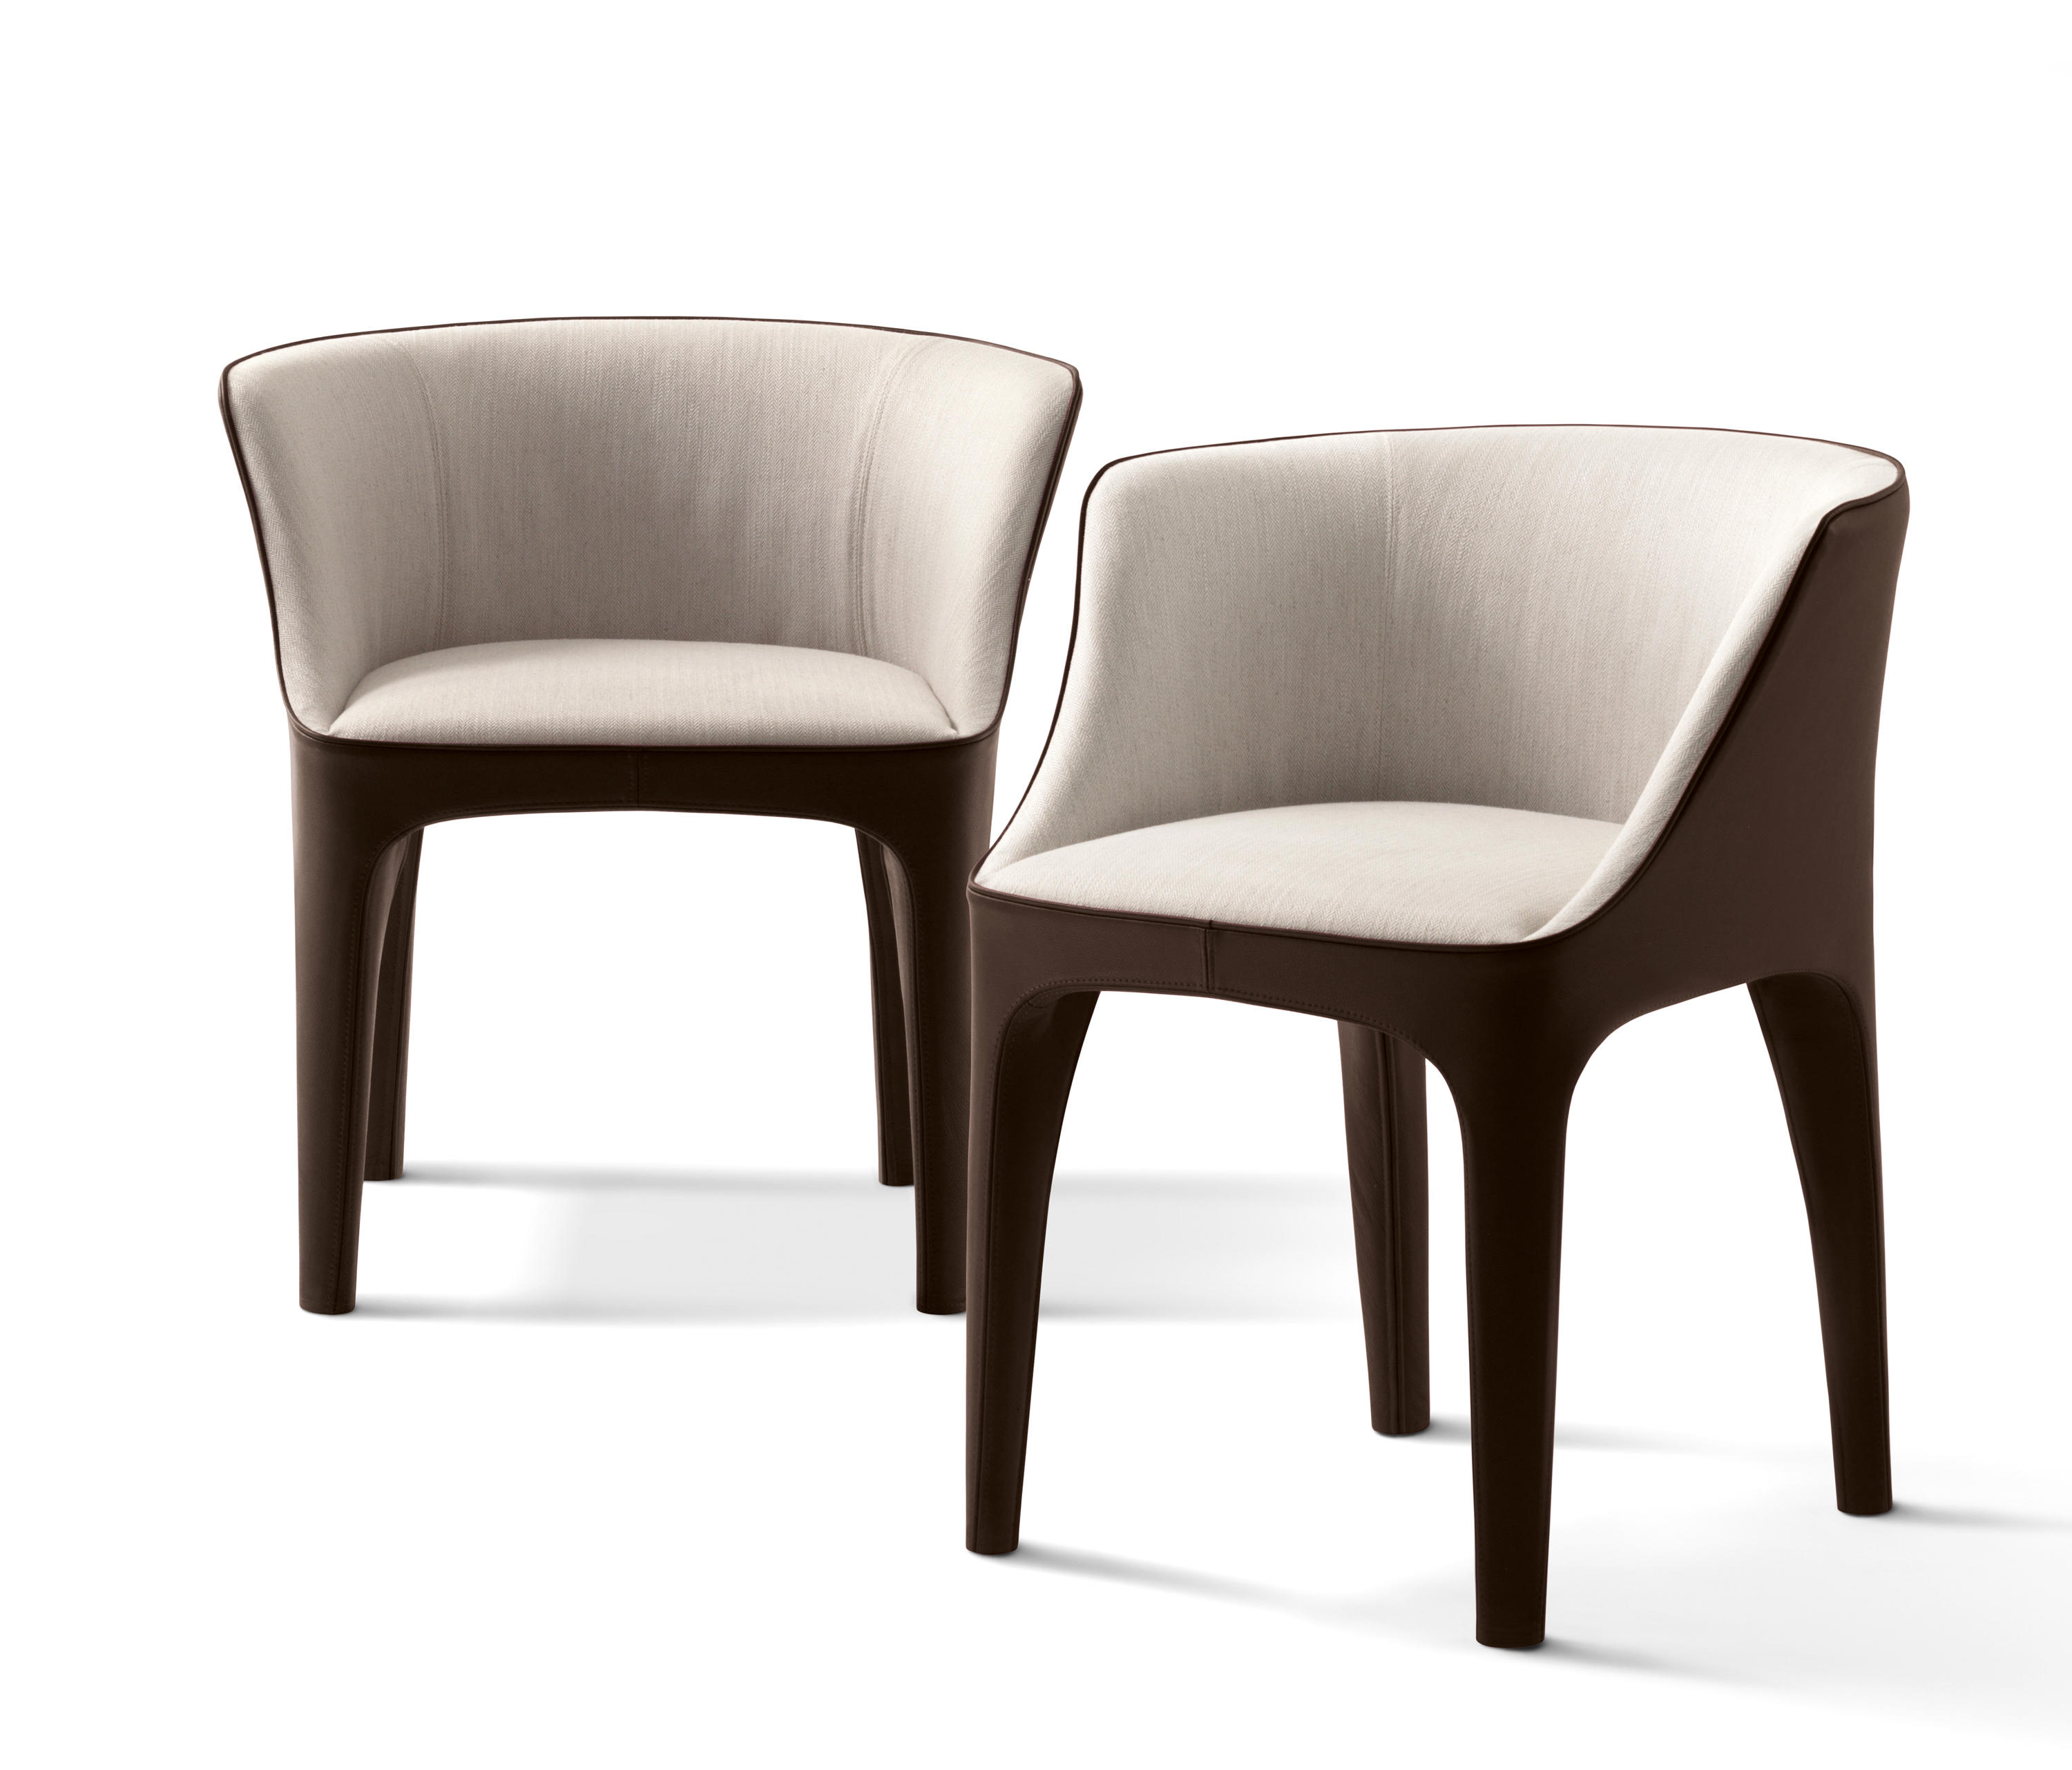 Small Armchair Diana Small Armchair Chairs From Giorgetti Architonic